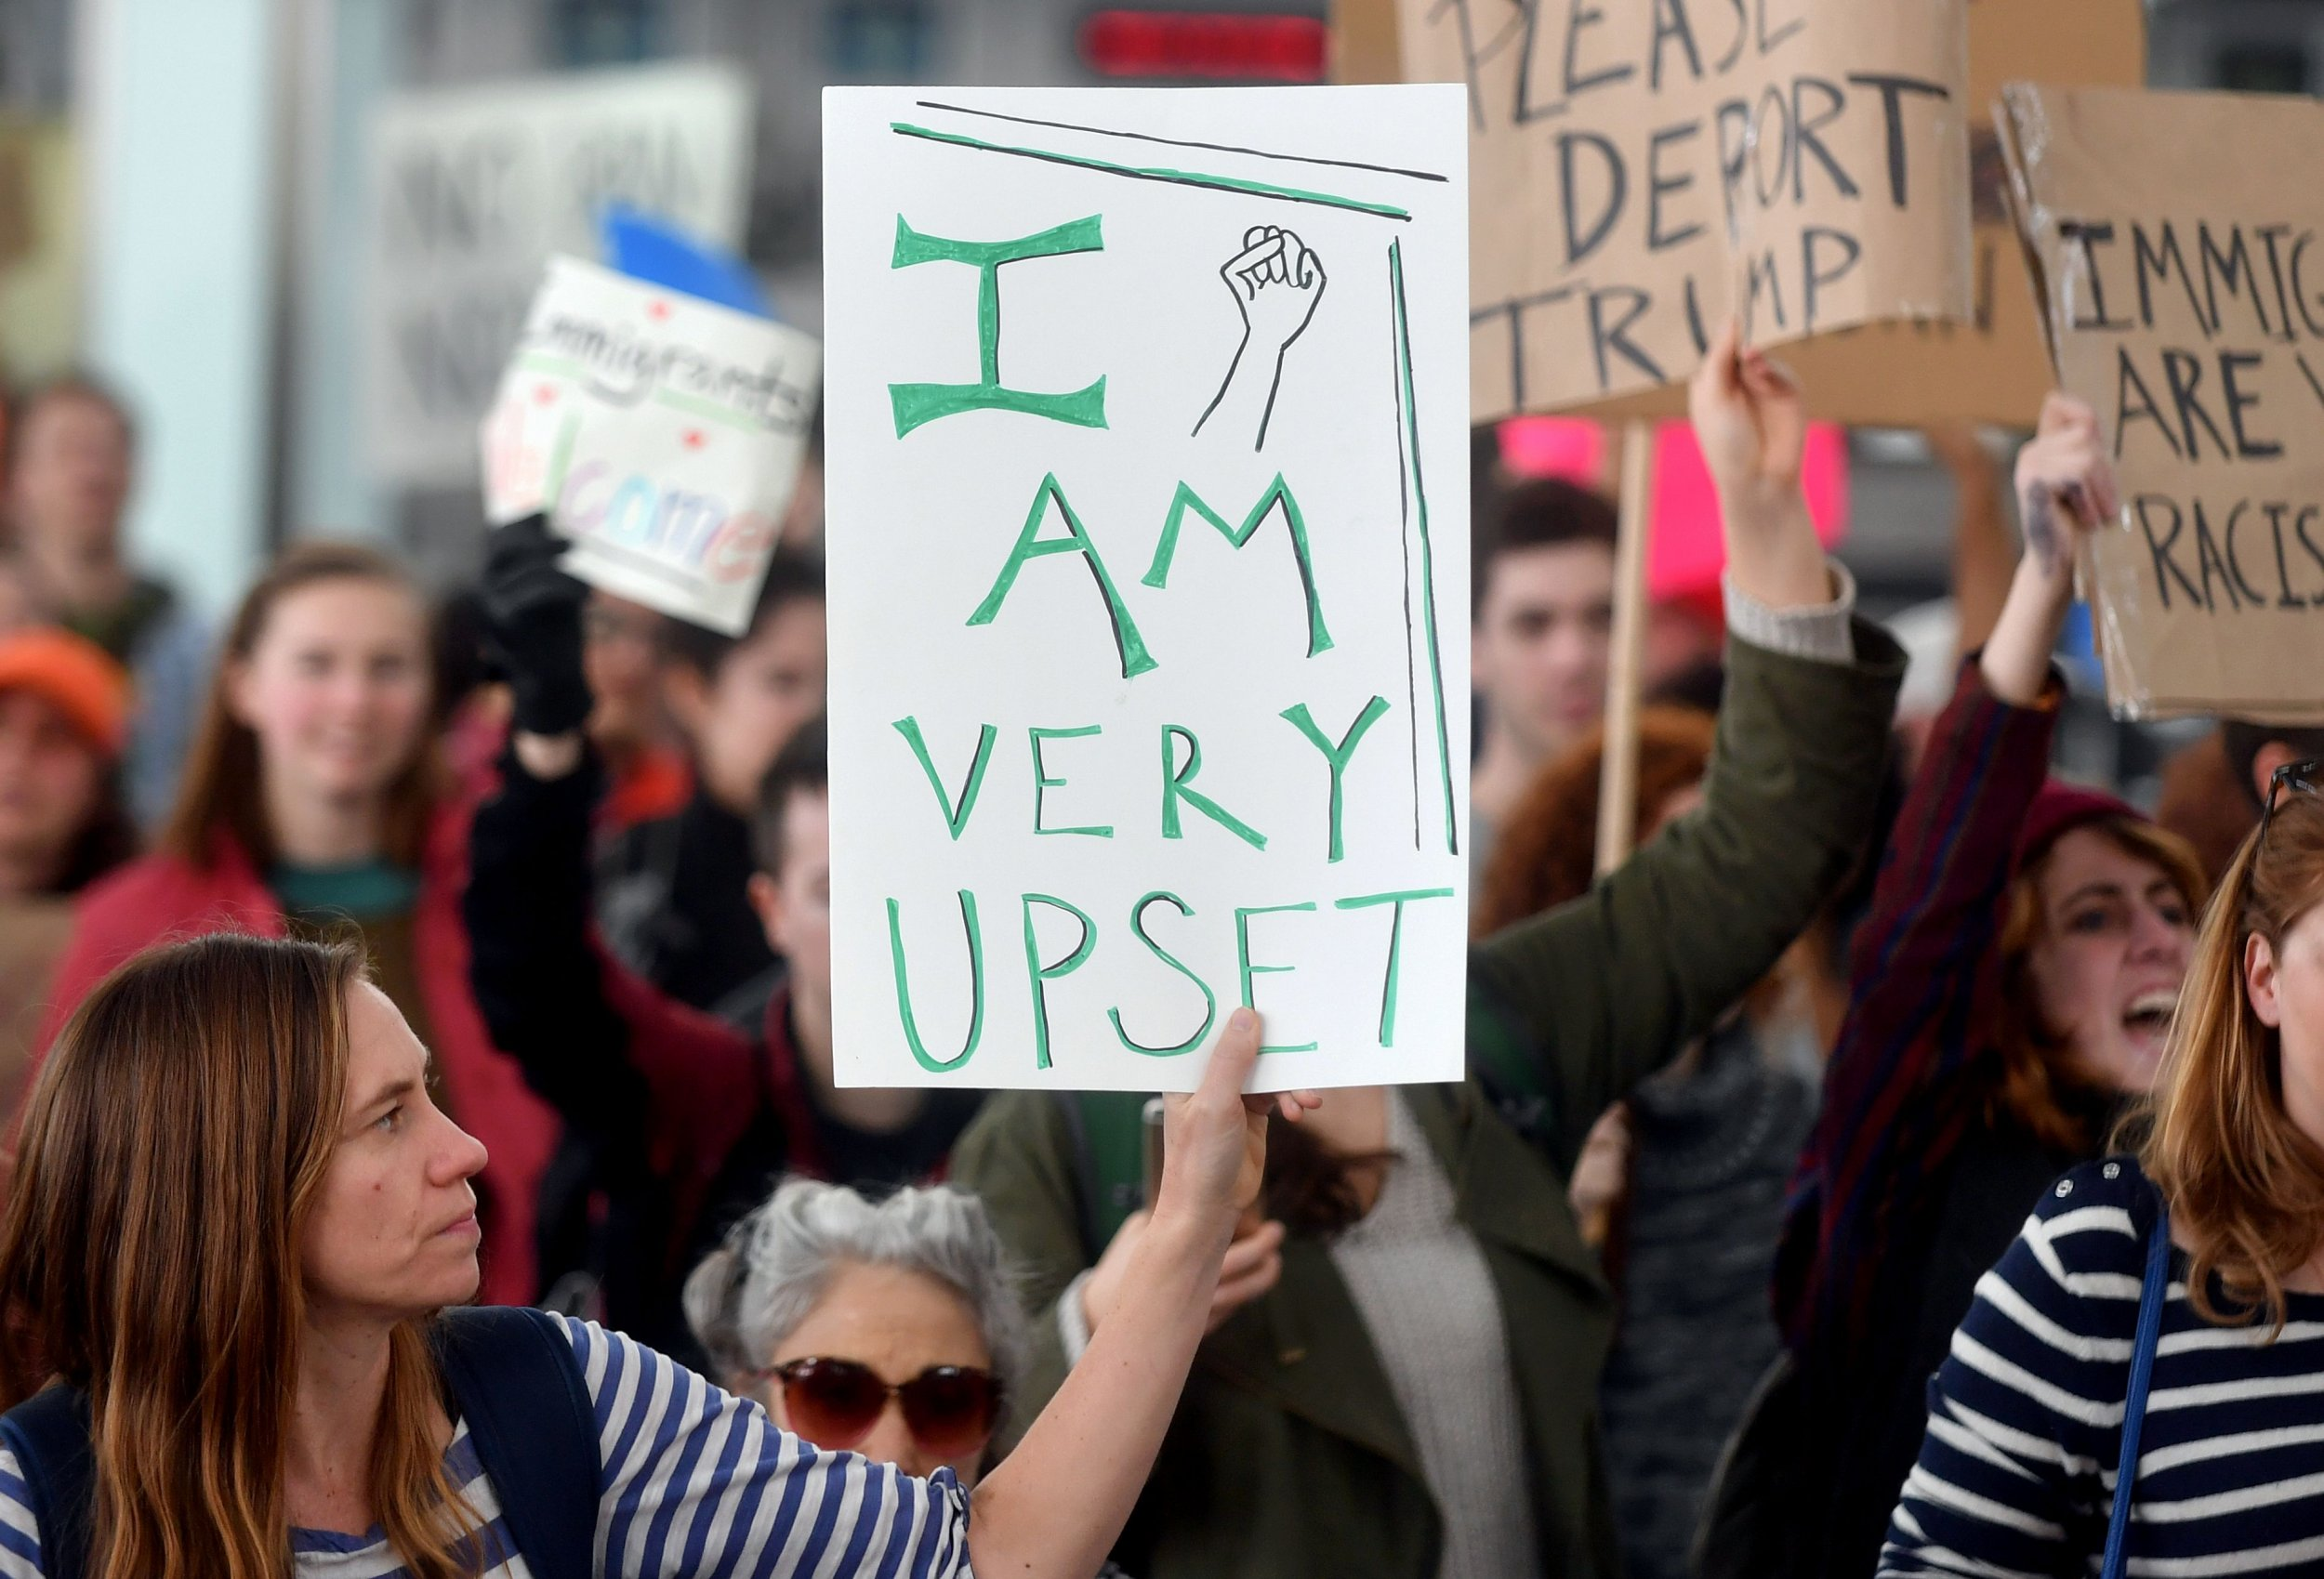 Protesters against Donald Trump's executive order hold up signs at San Francisco International Airport in San Francisco, California.